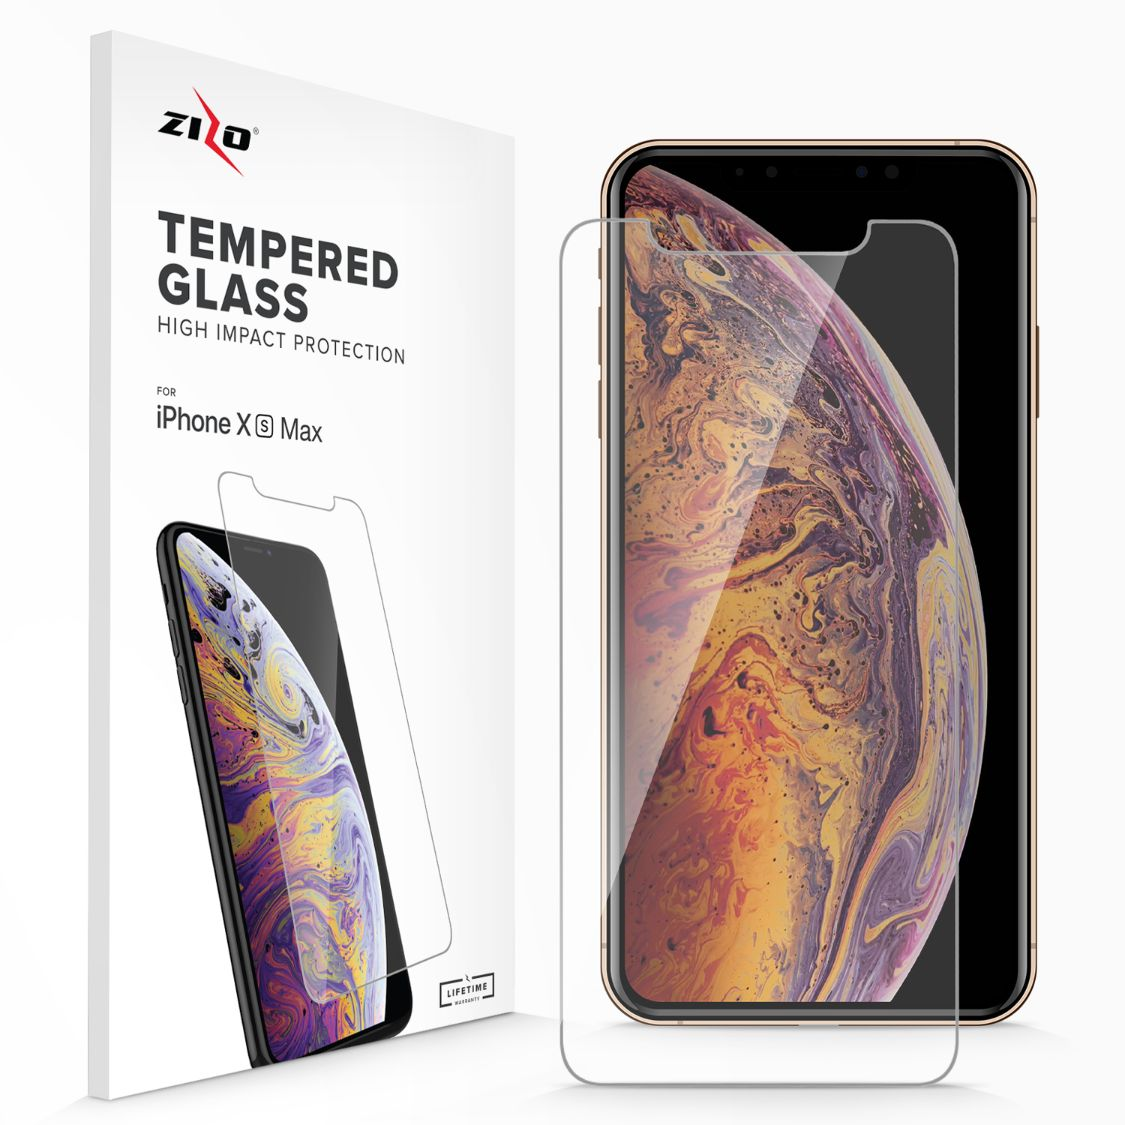 Lightning Shield iPhone XS Max Tempered Glass Screen Protector